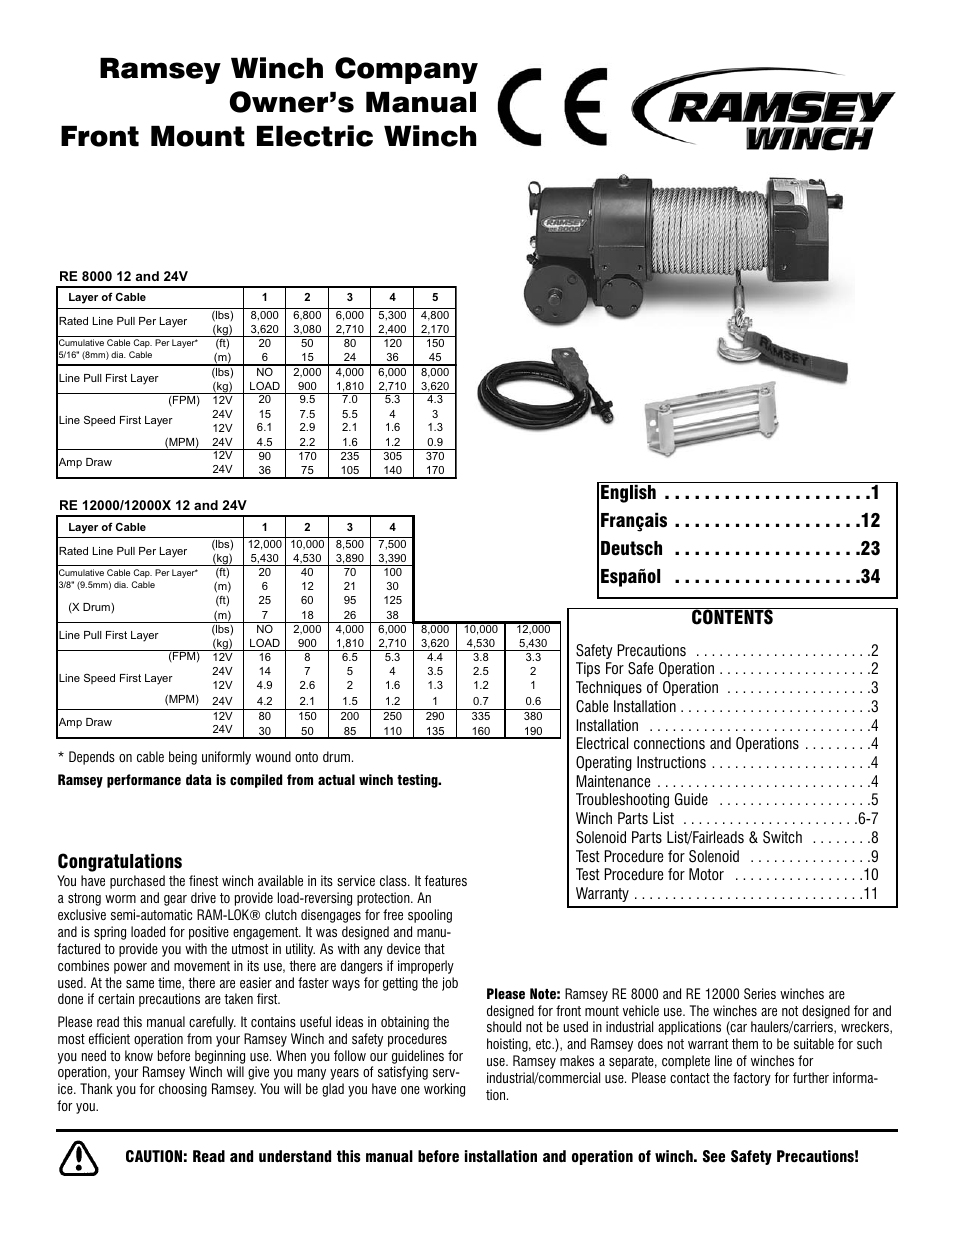 ramsey winch solenoid wiring diagram 2004 pontiac grand prix monsoon electric best library re 12000 36 old